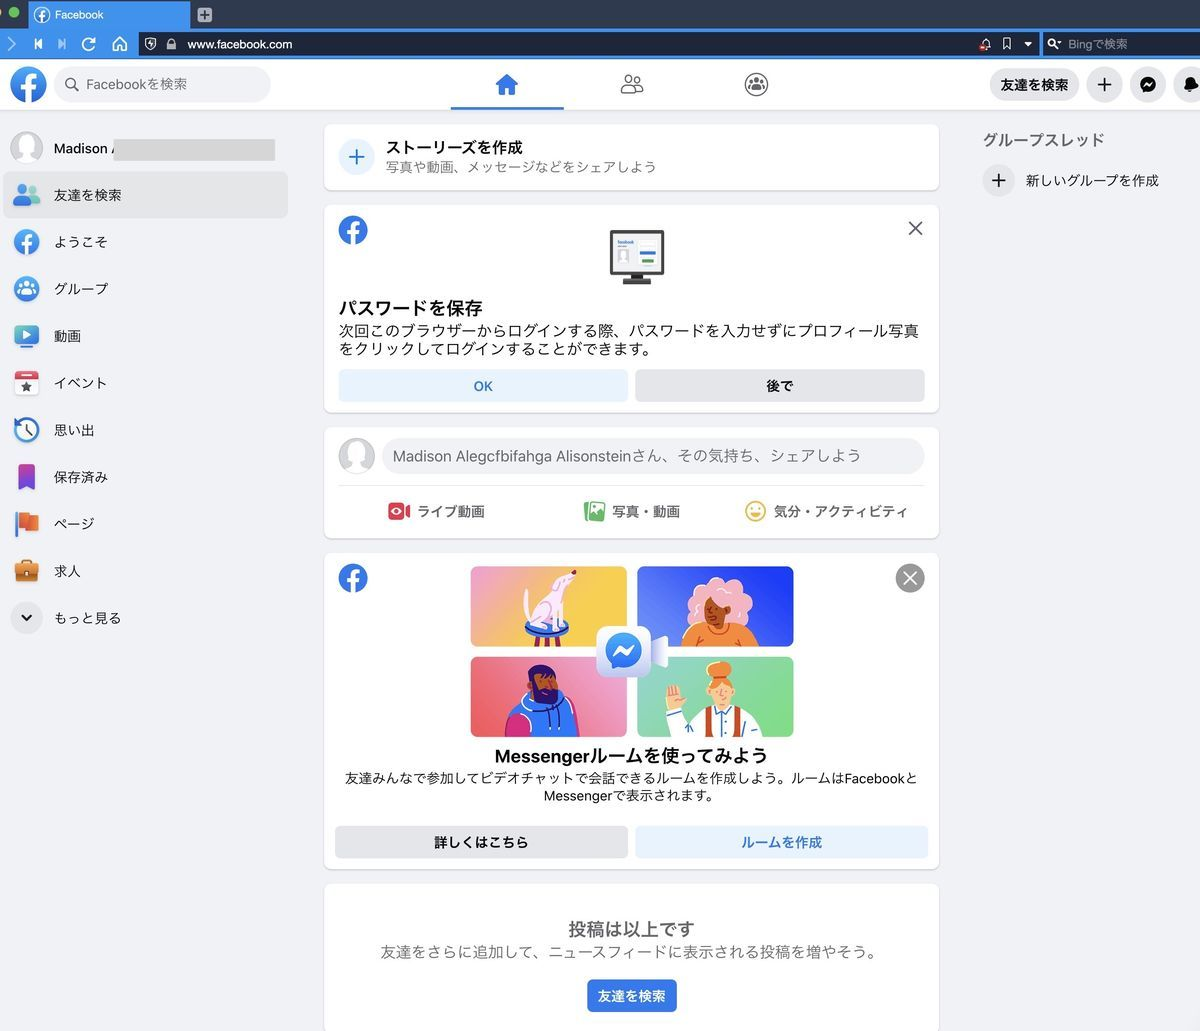 a facebook page from a test user account